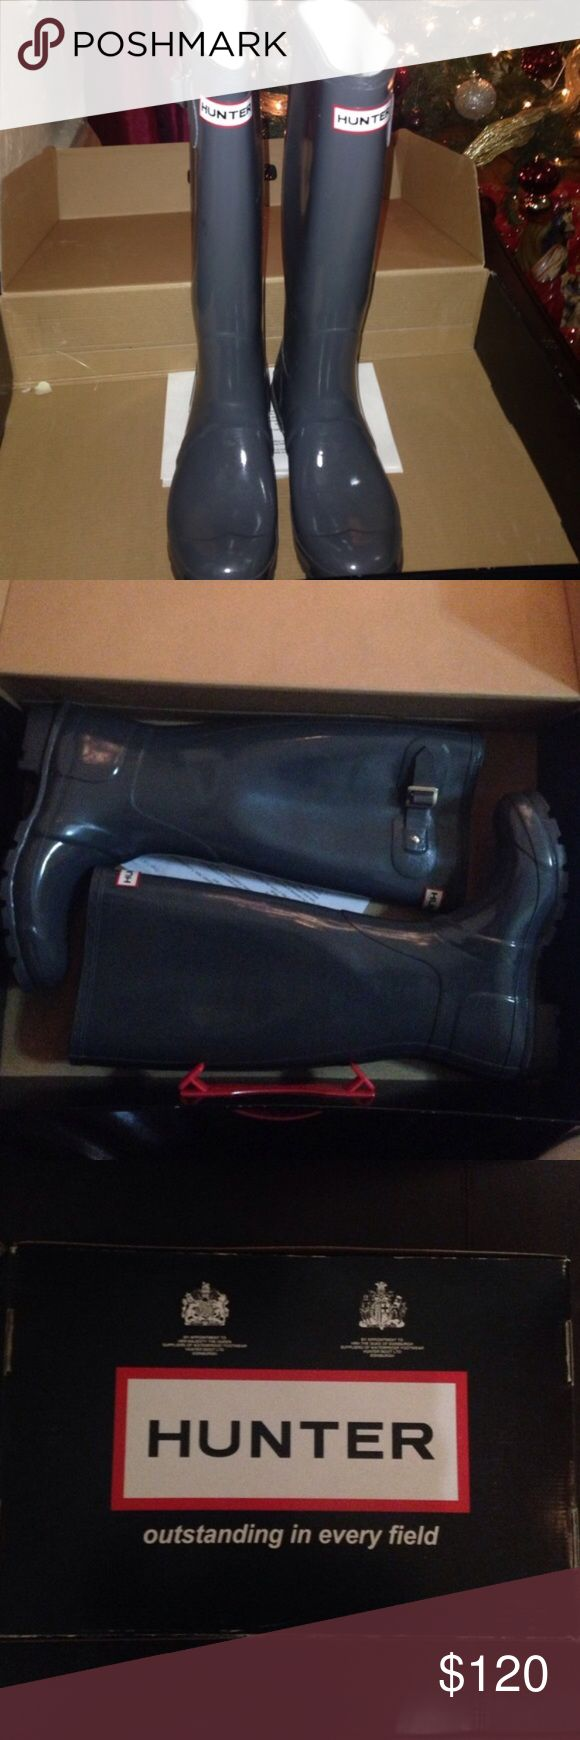 Grey hunter boots Tall gloss hunter boots, comes in box but has to be shipped out without it. Only been wore once. Hunter Boots Shoes Winter & Rain Boots